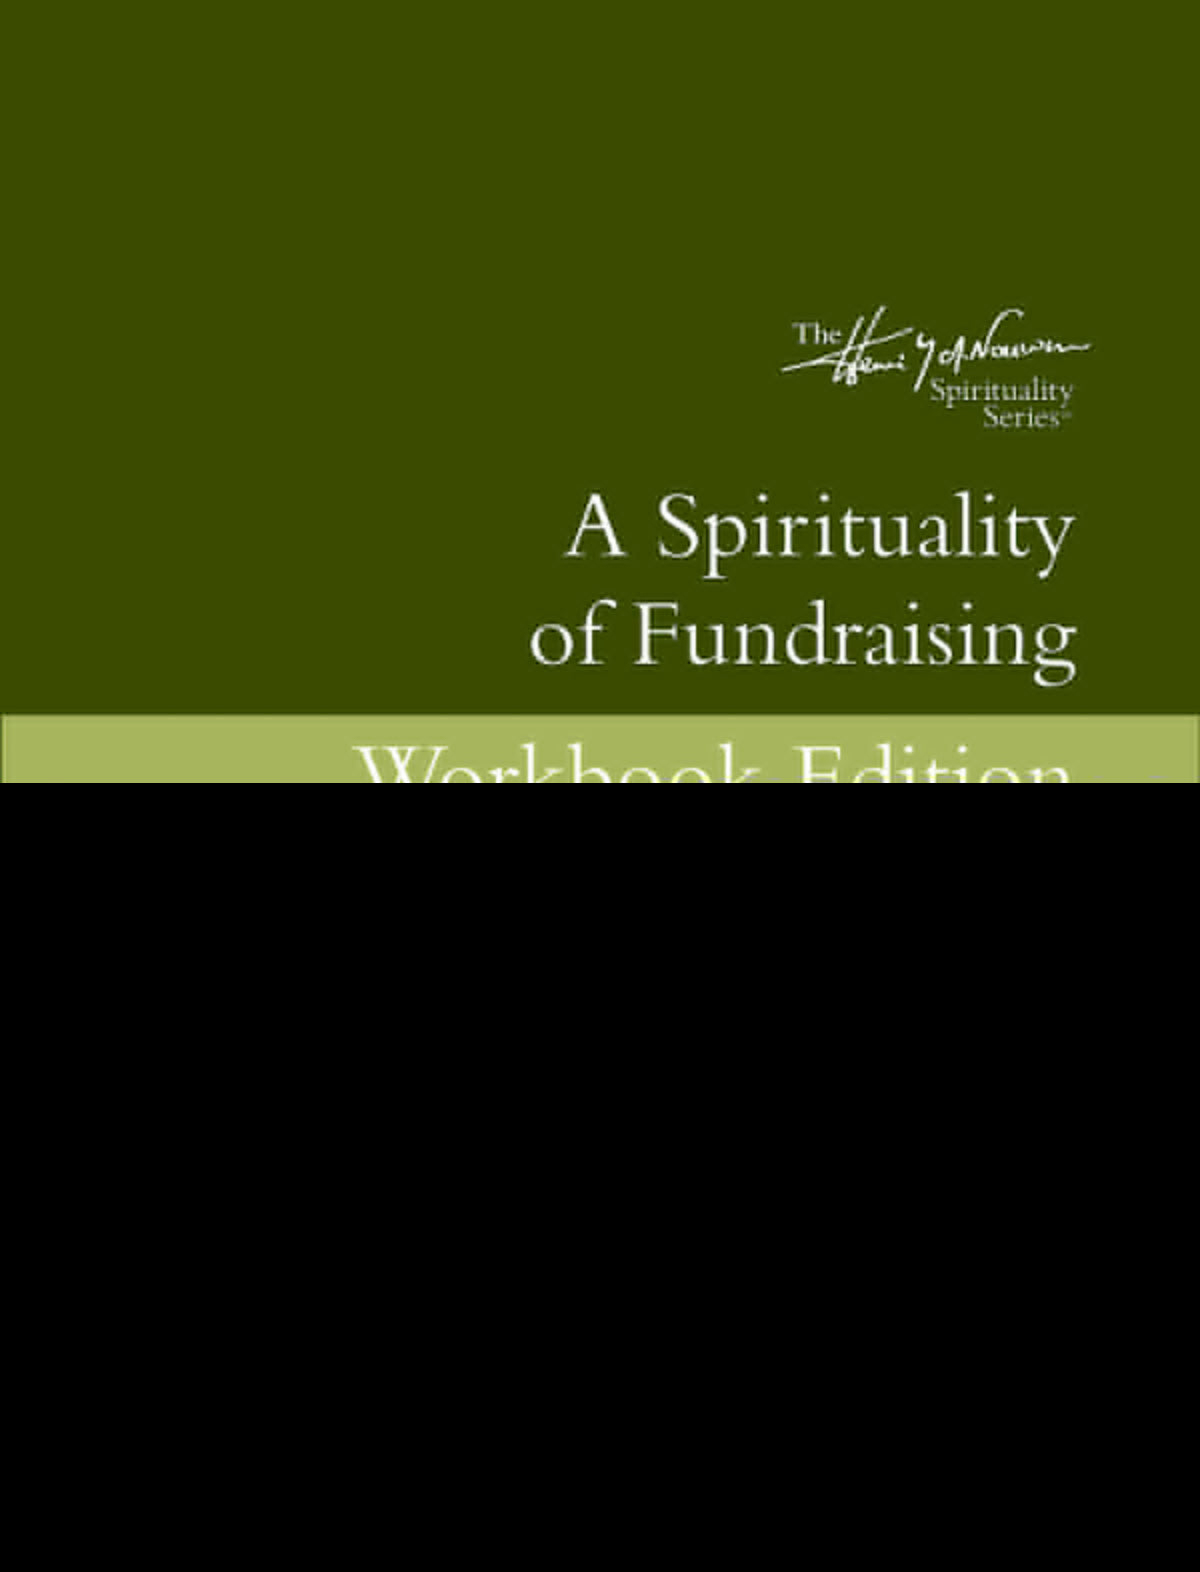 A Spirituality Of Fundraising (Workbook Edition)